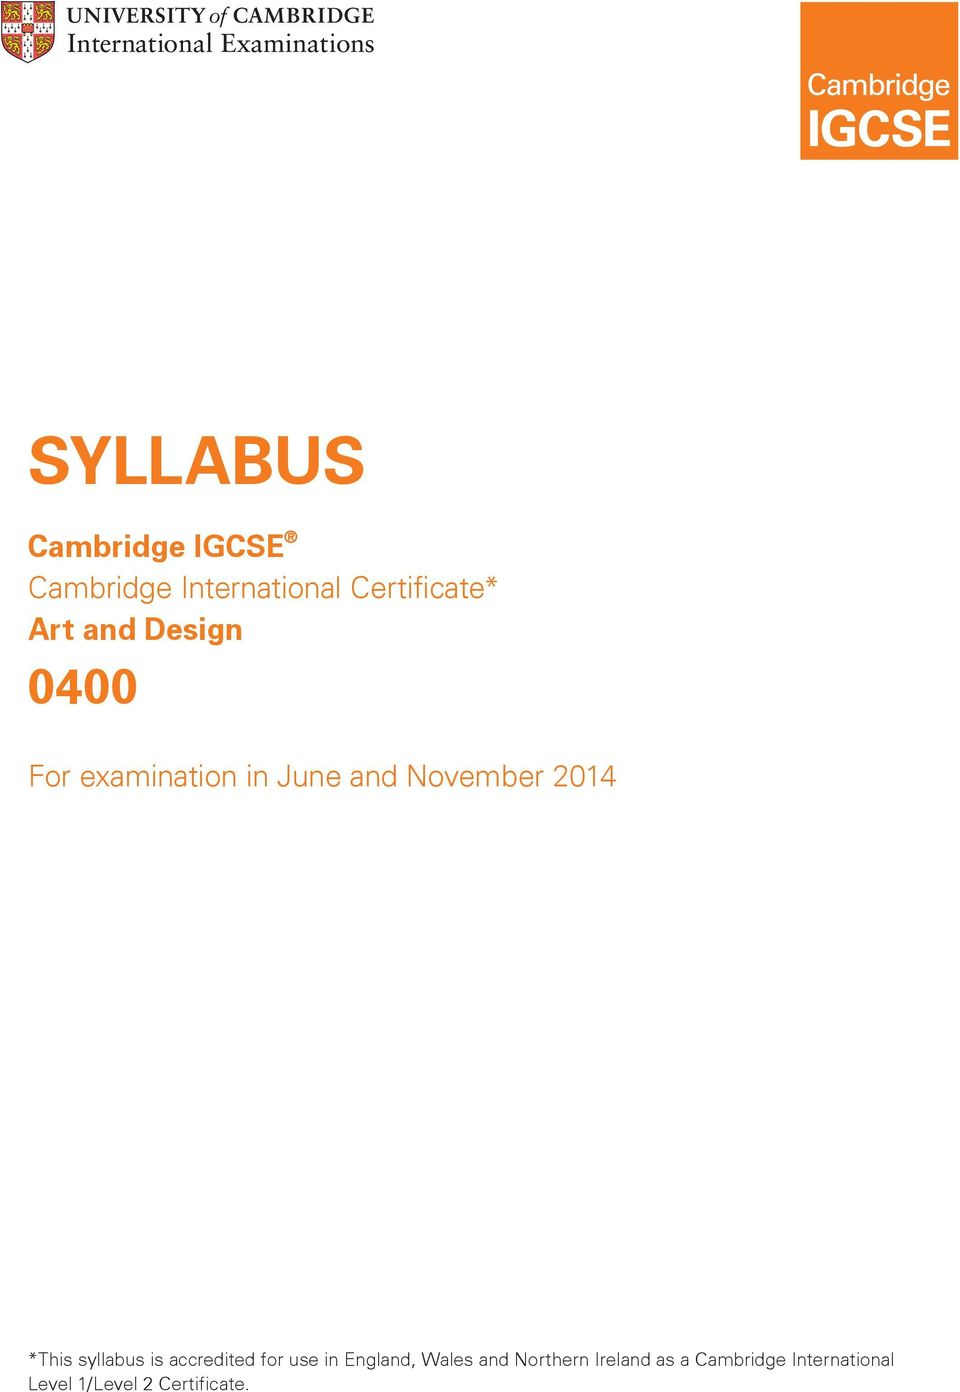 *This syllabus is accredited for use in England, Wales and